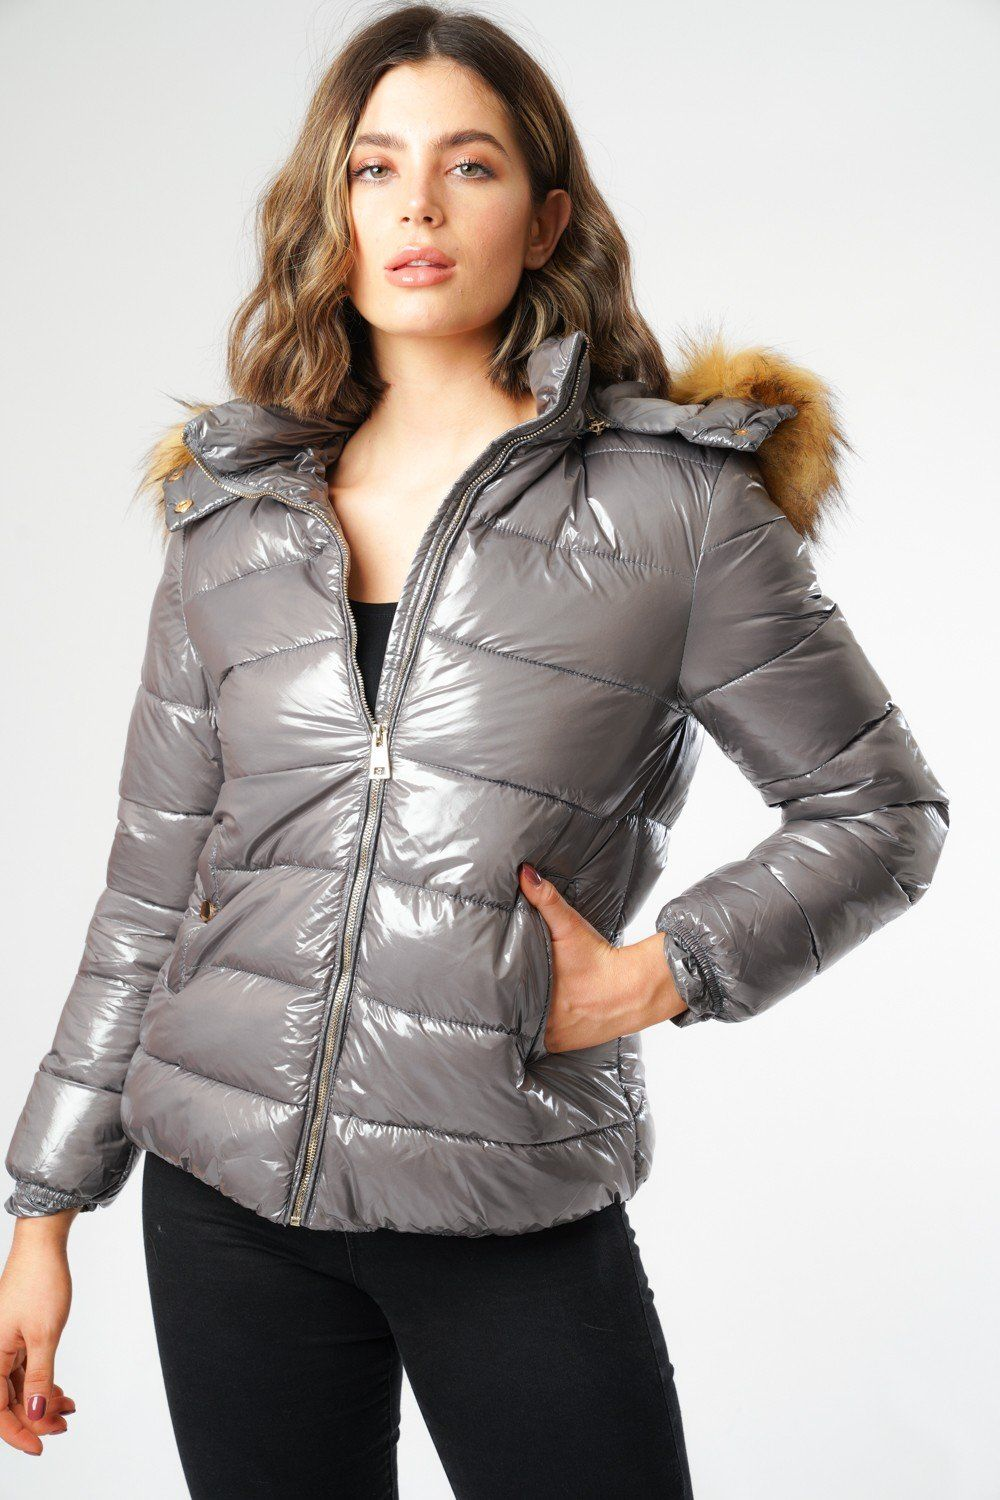 Grey Shiny Puffer Jacket with Big Faux Fur in 2020